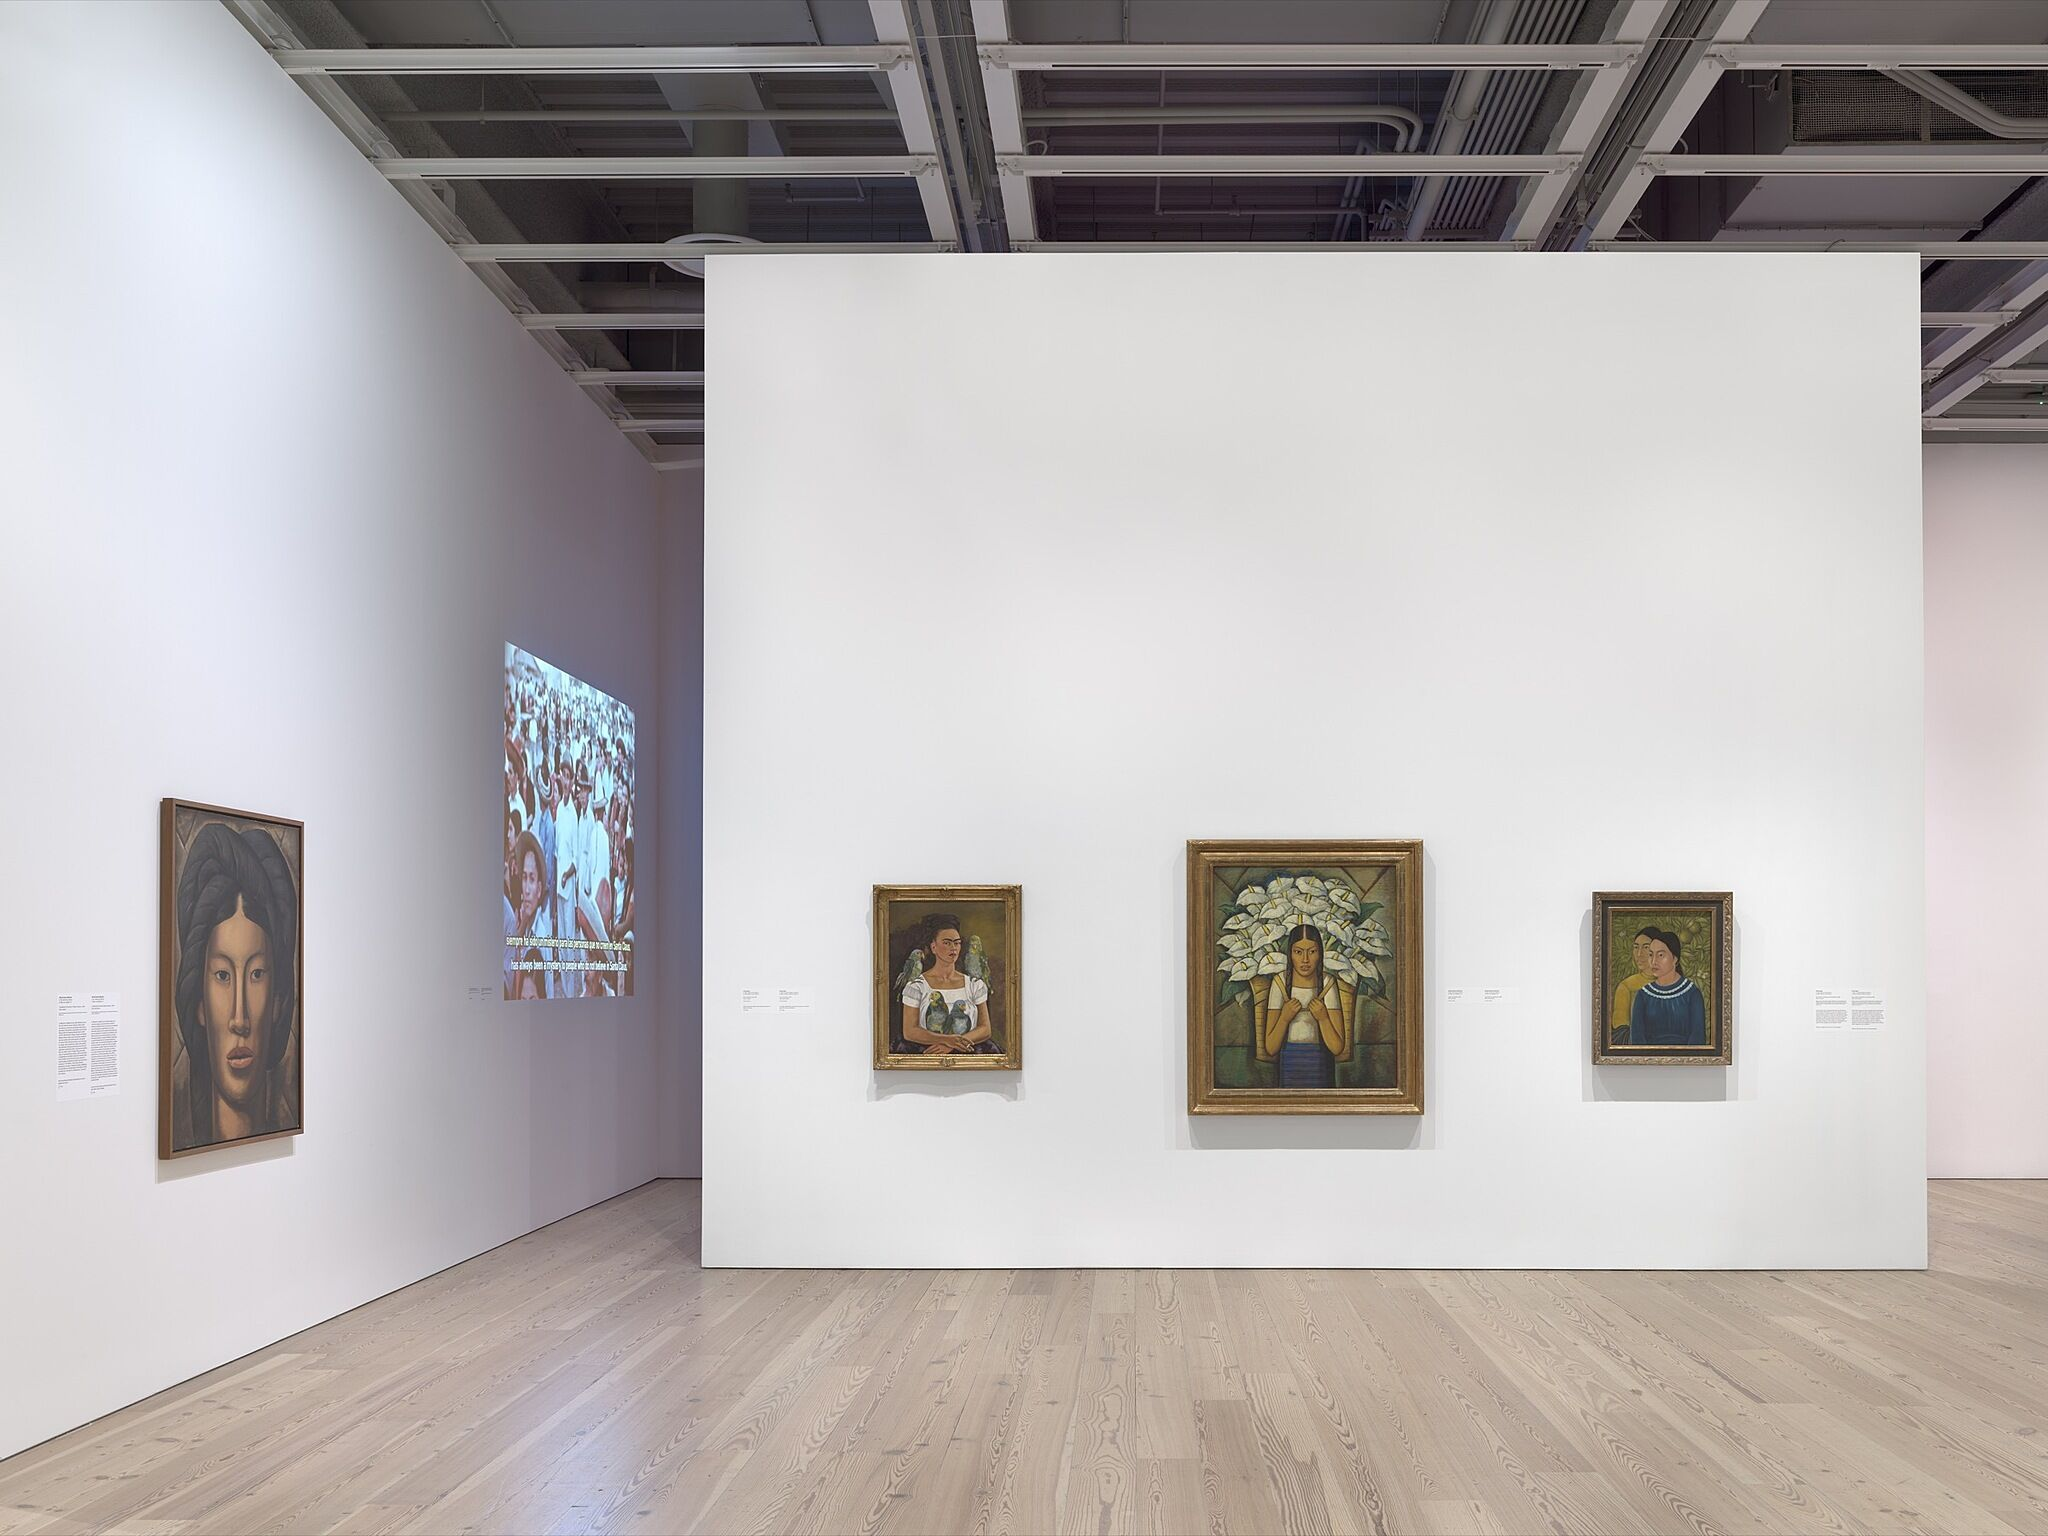 An installation photo of a gallery with paintings.